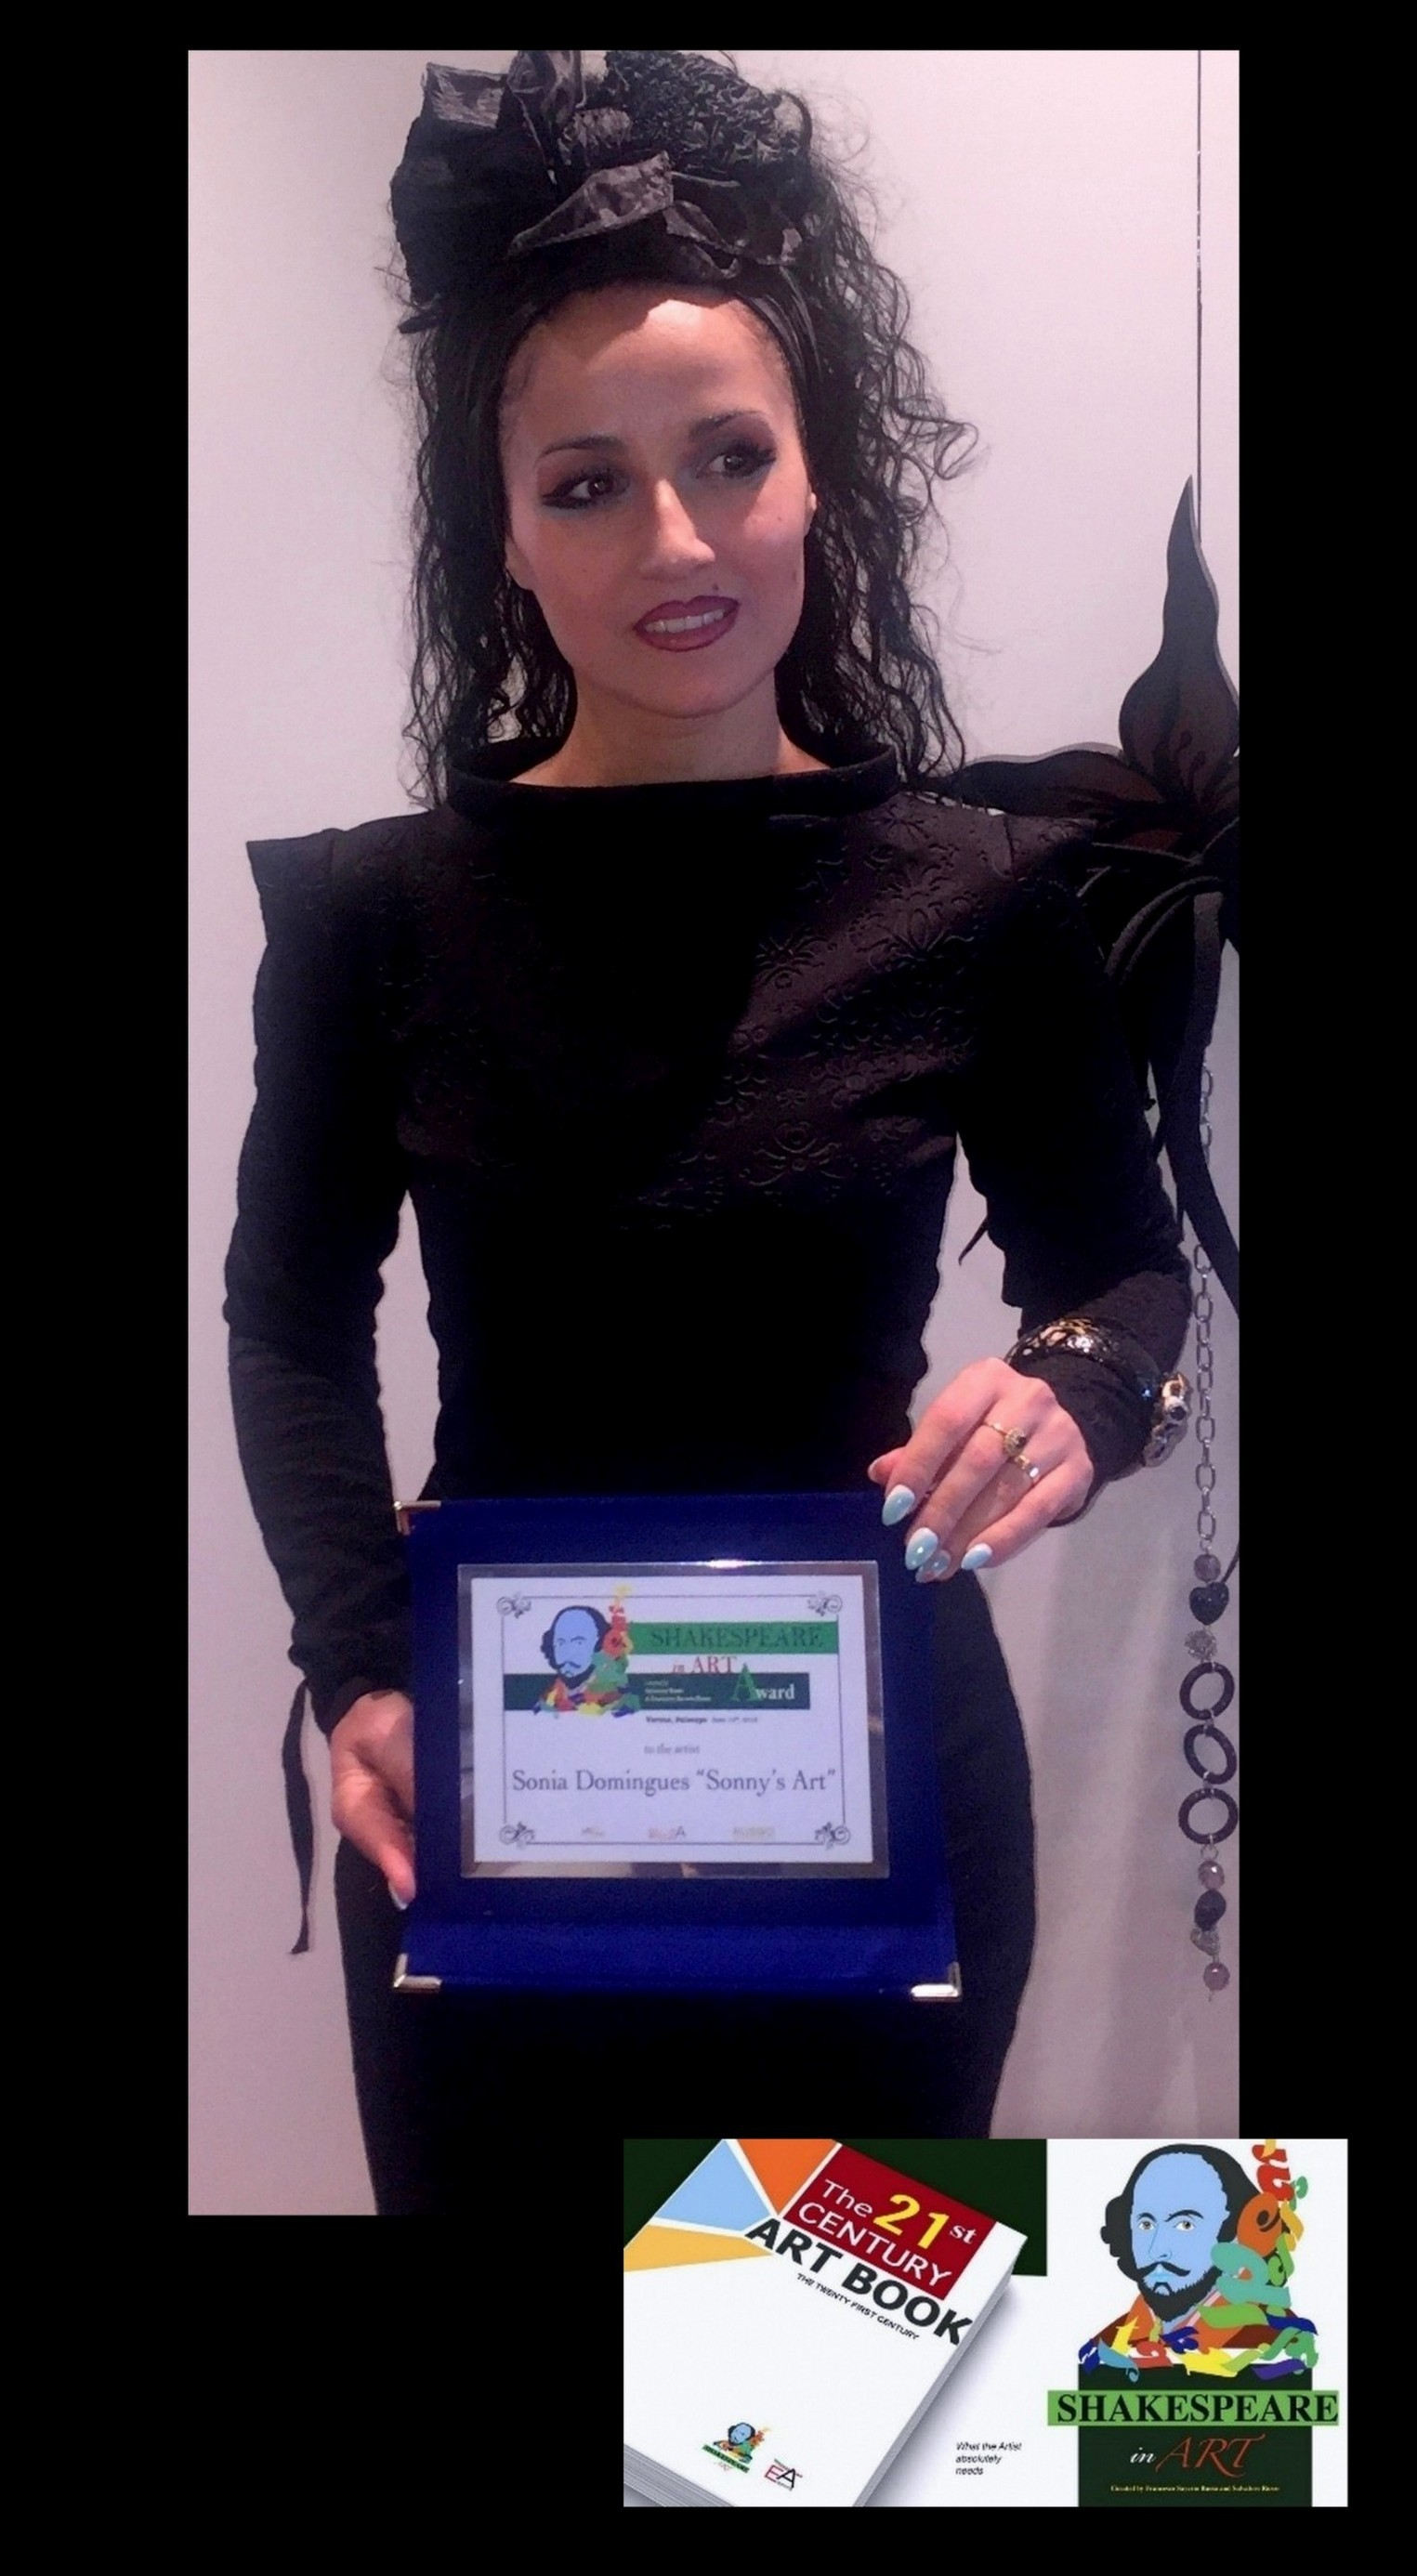 Master Sonia Domingues Awarded with Shakespeare In Art and Book Awards Ceremony on Verona New York and Washington